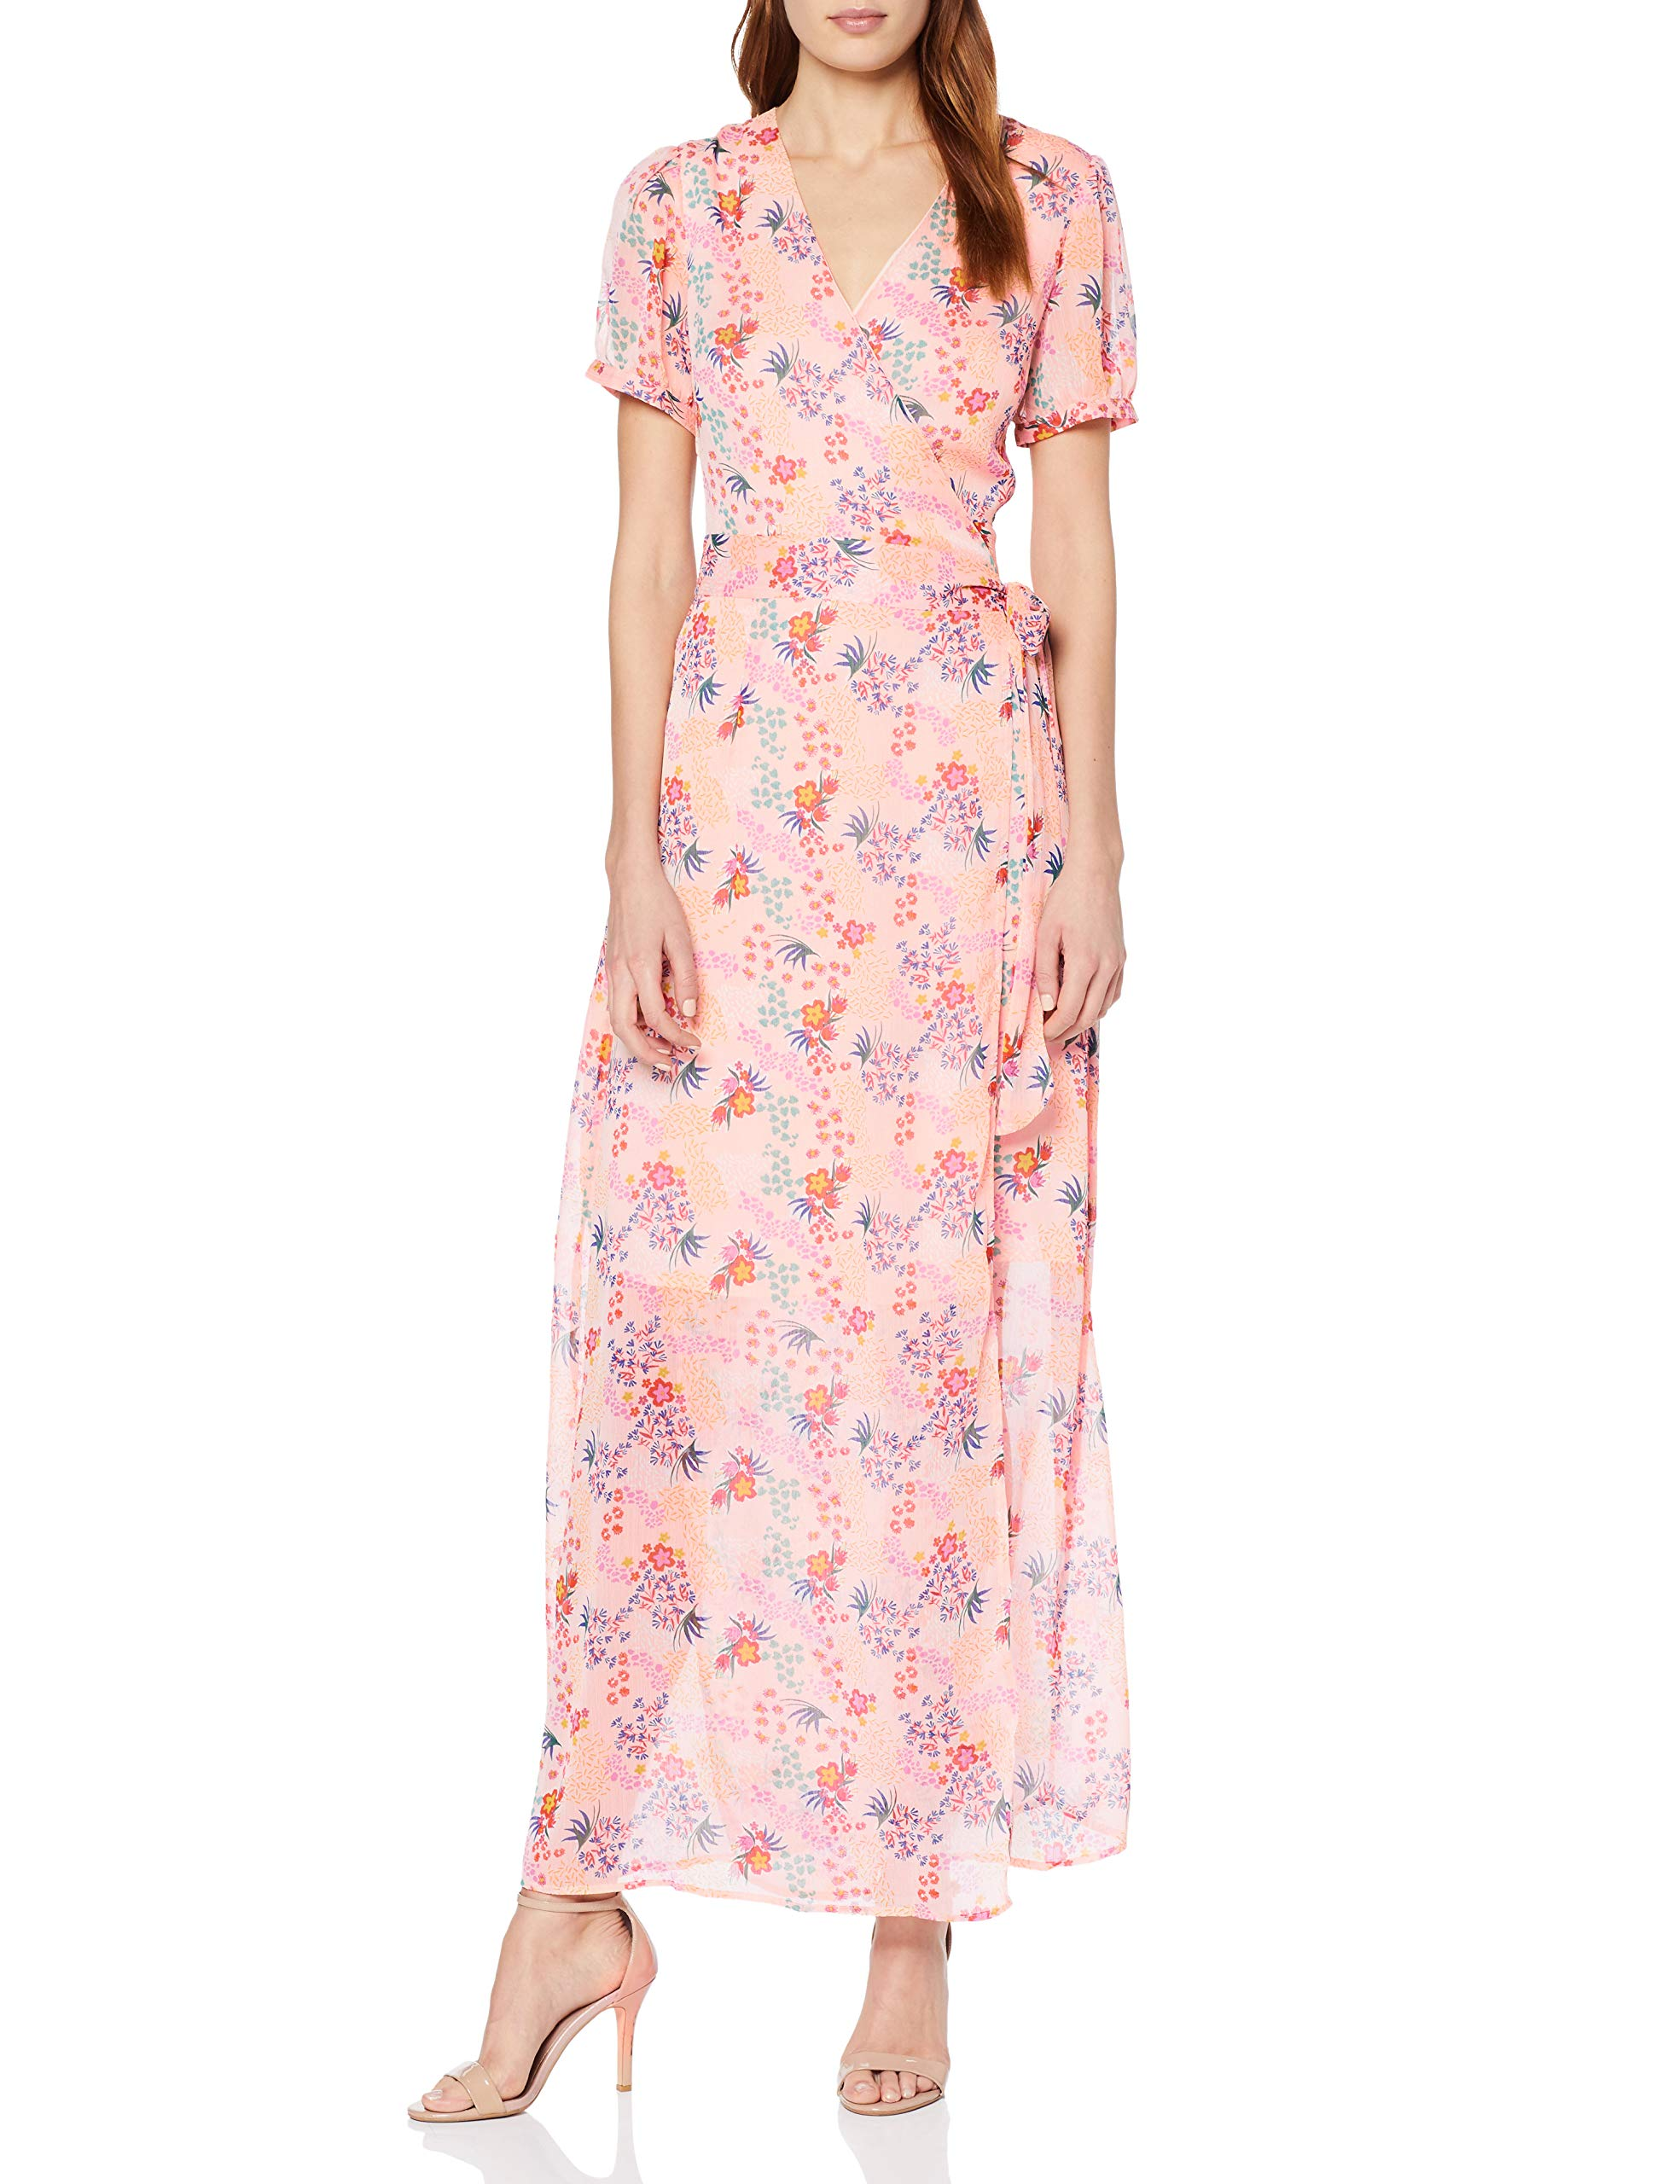 Mini Pink Floral Glamorous RobeMulticolorelight Bw5138taille Summer Fabricant10Femme Dress lJuT3FK1c